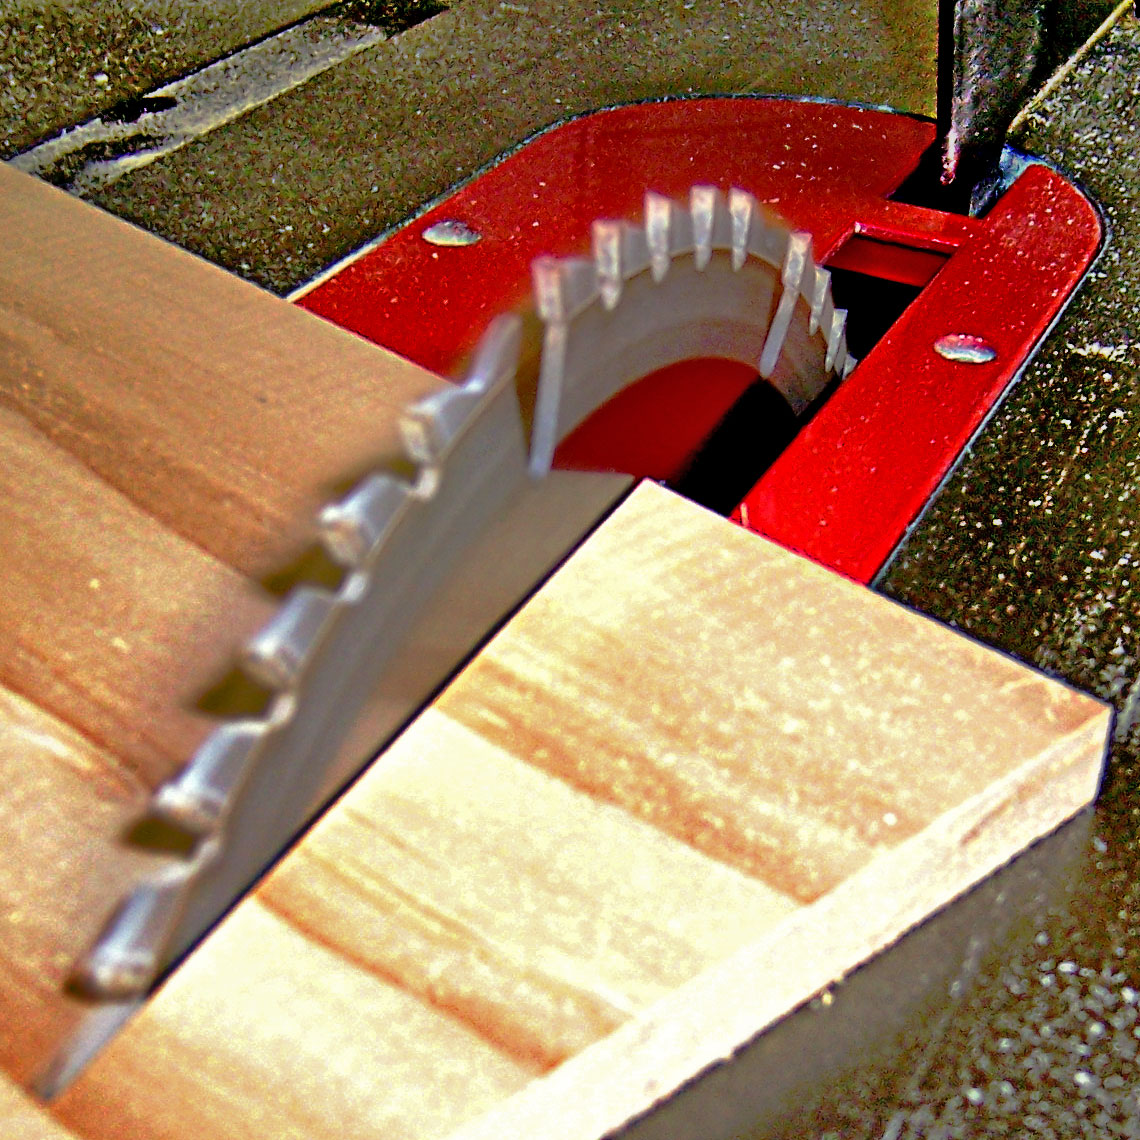 Table_saw_cutting_wood_at_an_angle,_by_BarelyFitz